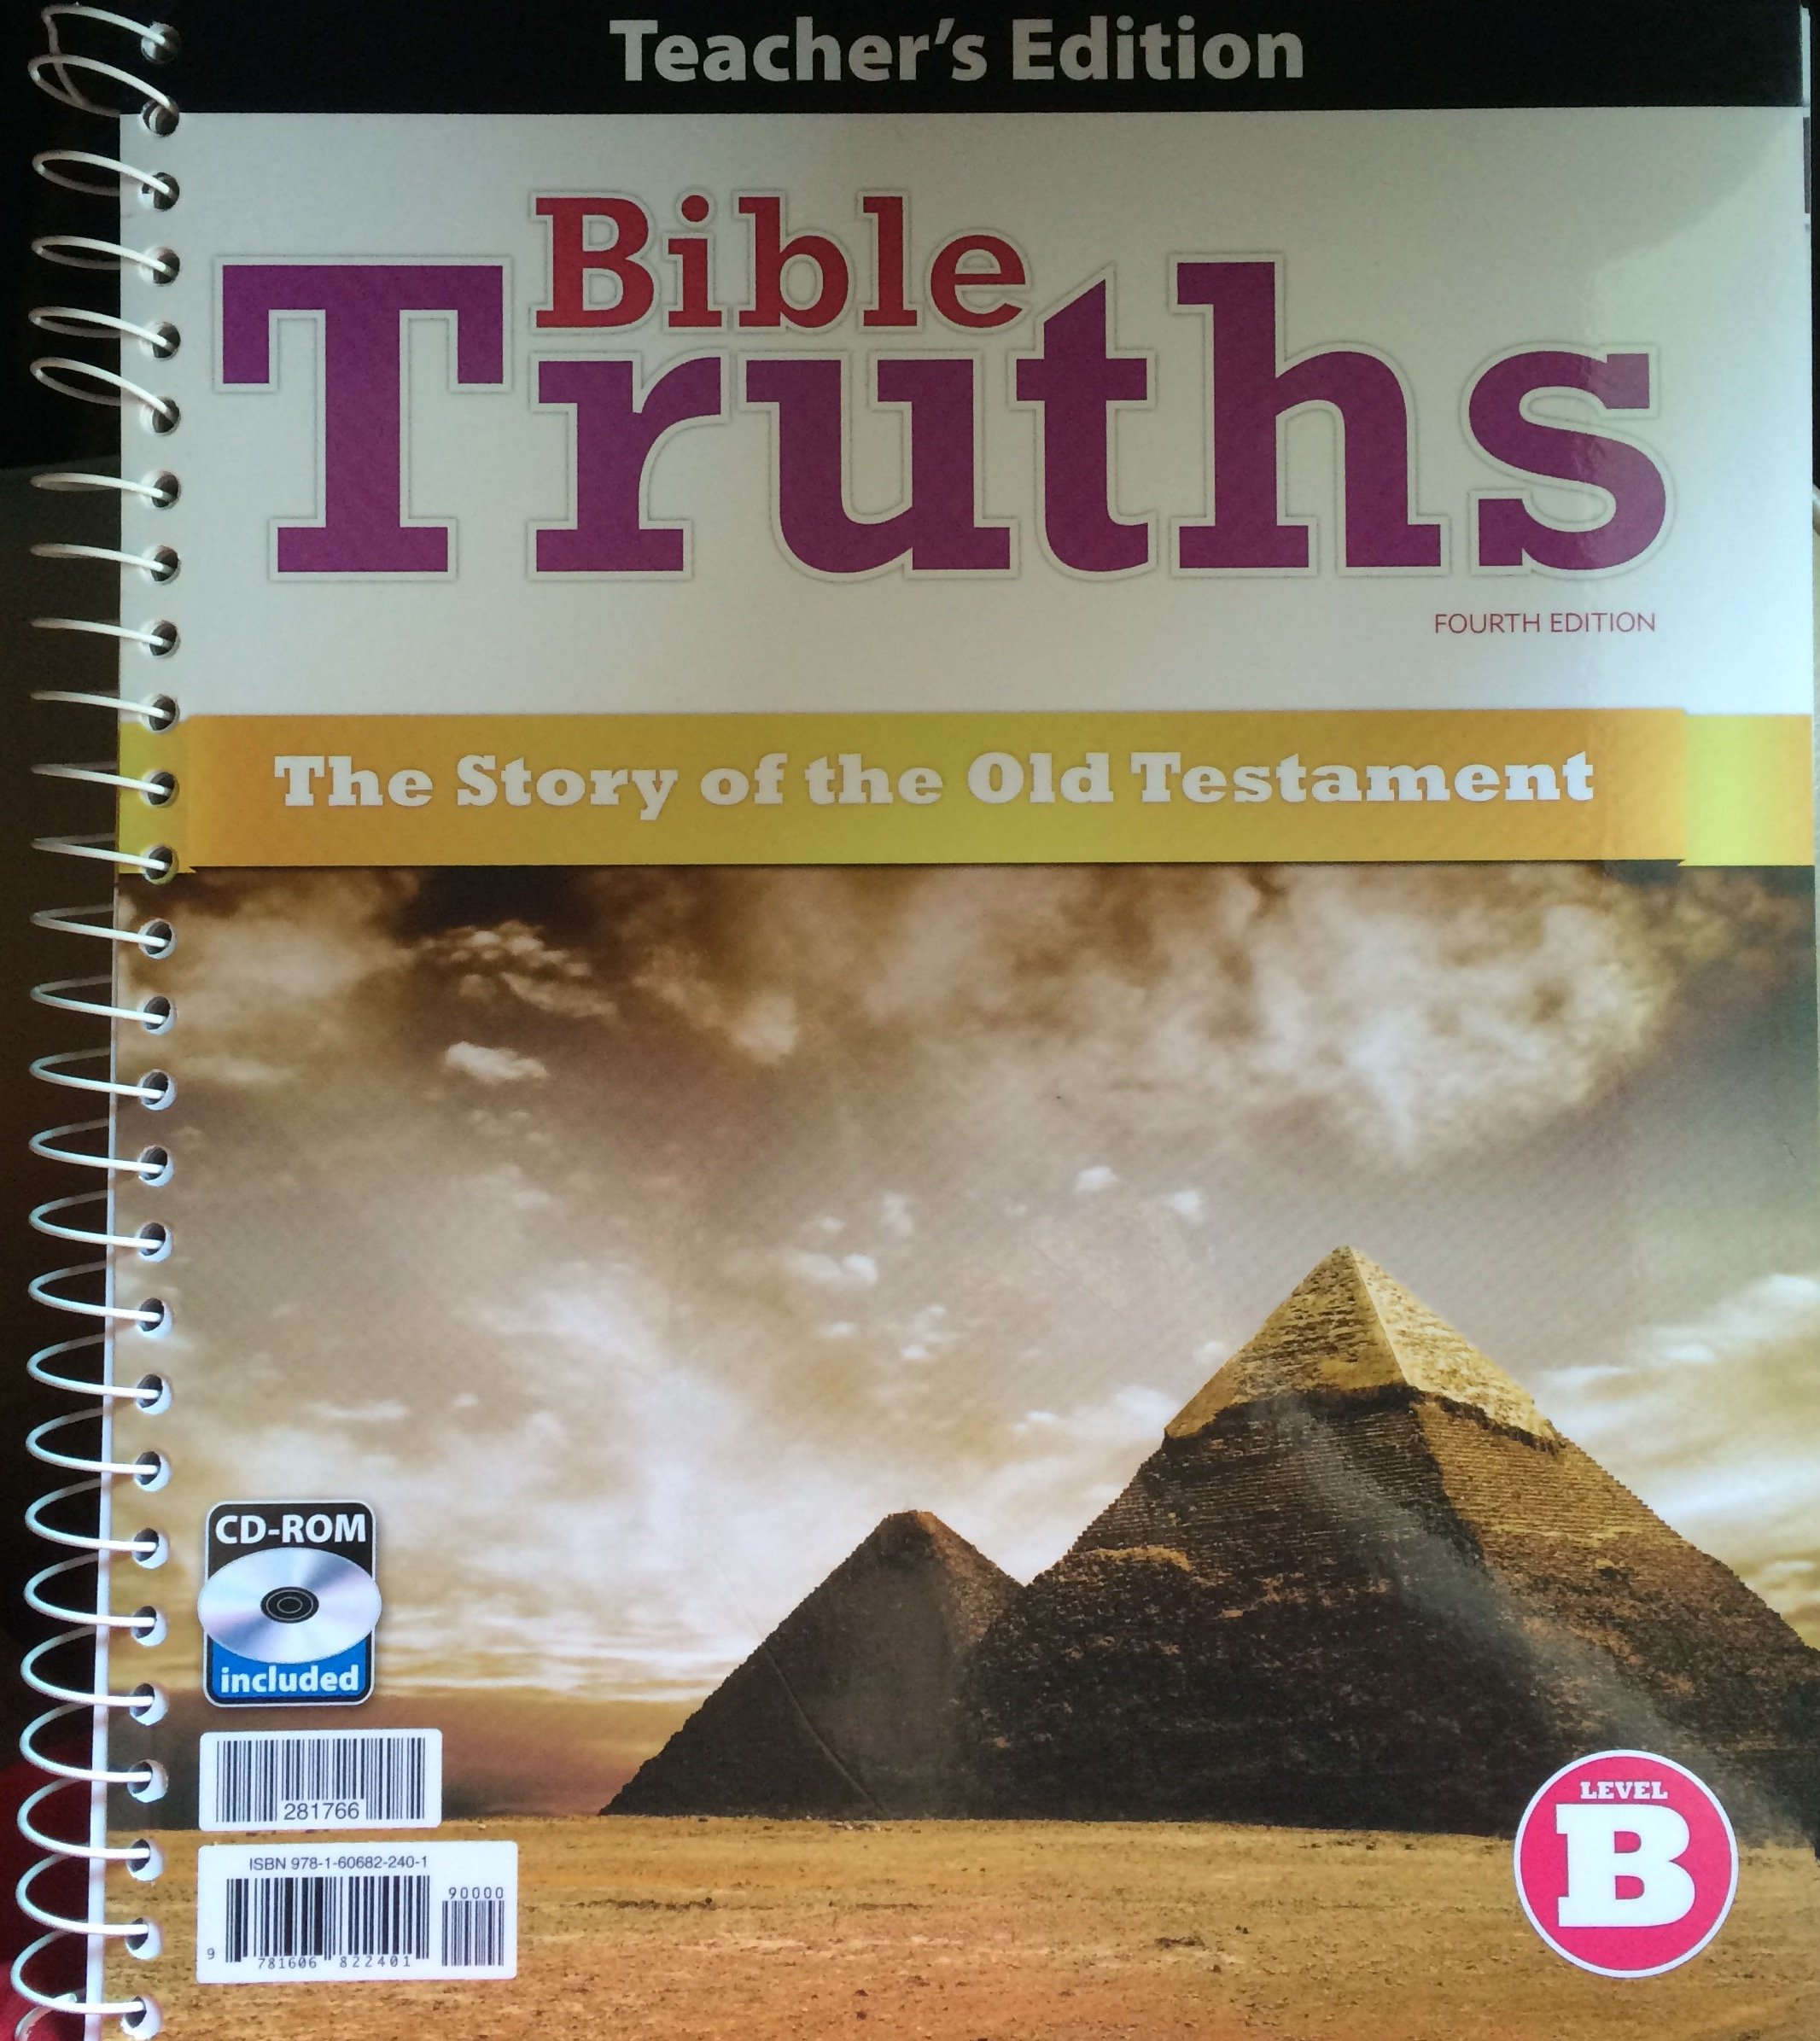 Bible Truths B (4th Ed) The Story of the Old Testament Teacher Edition PDF